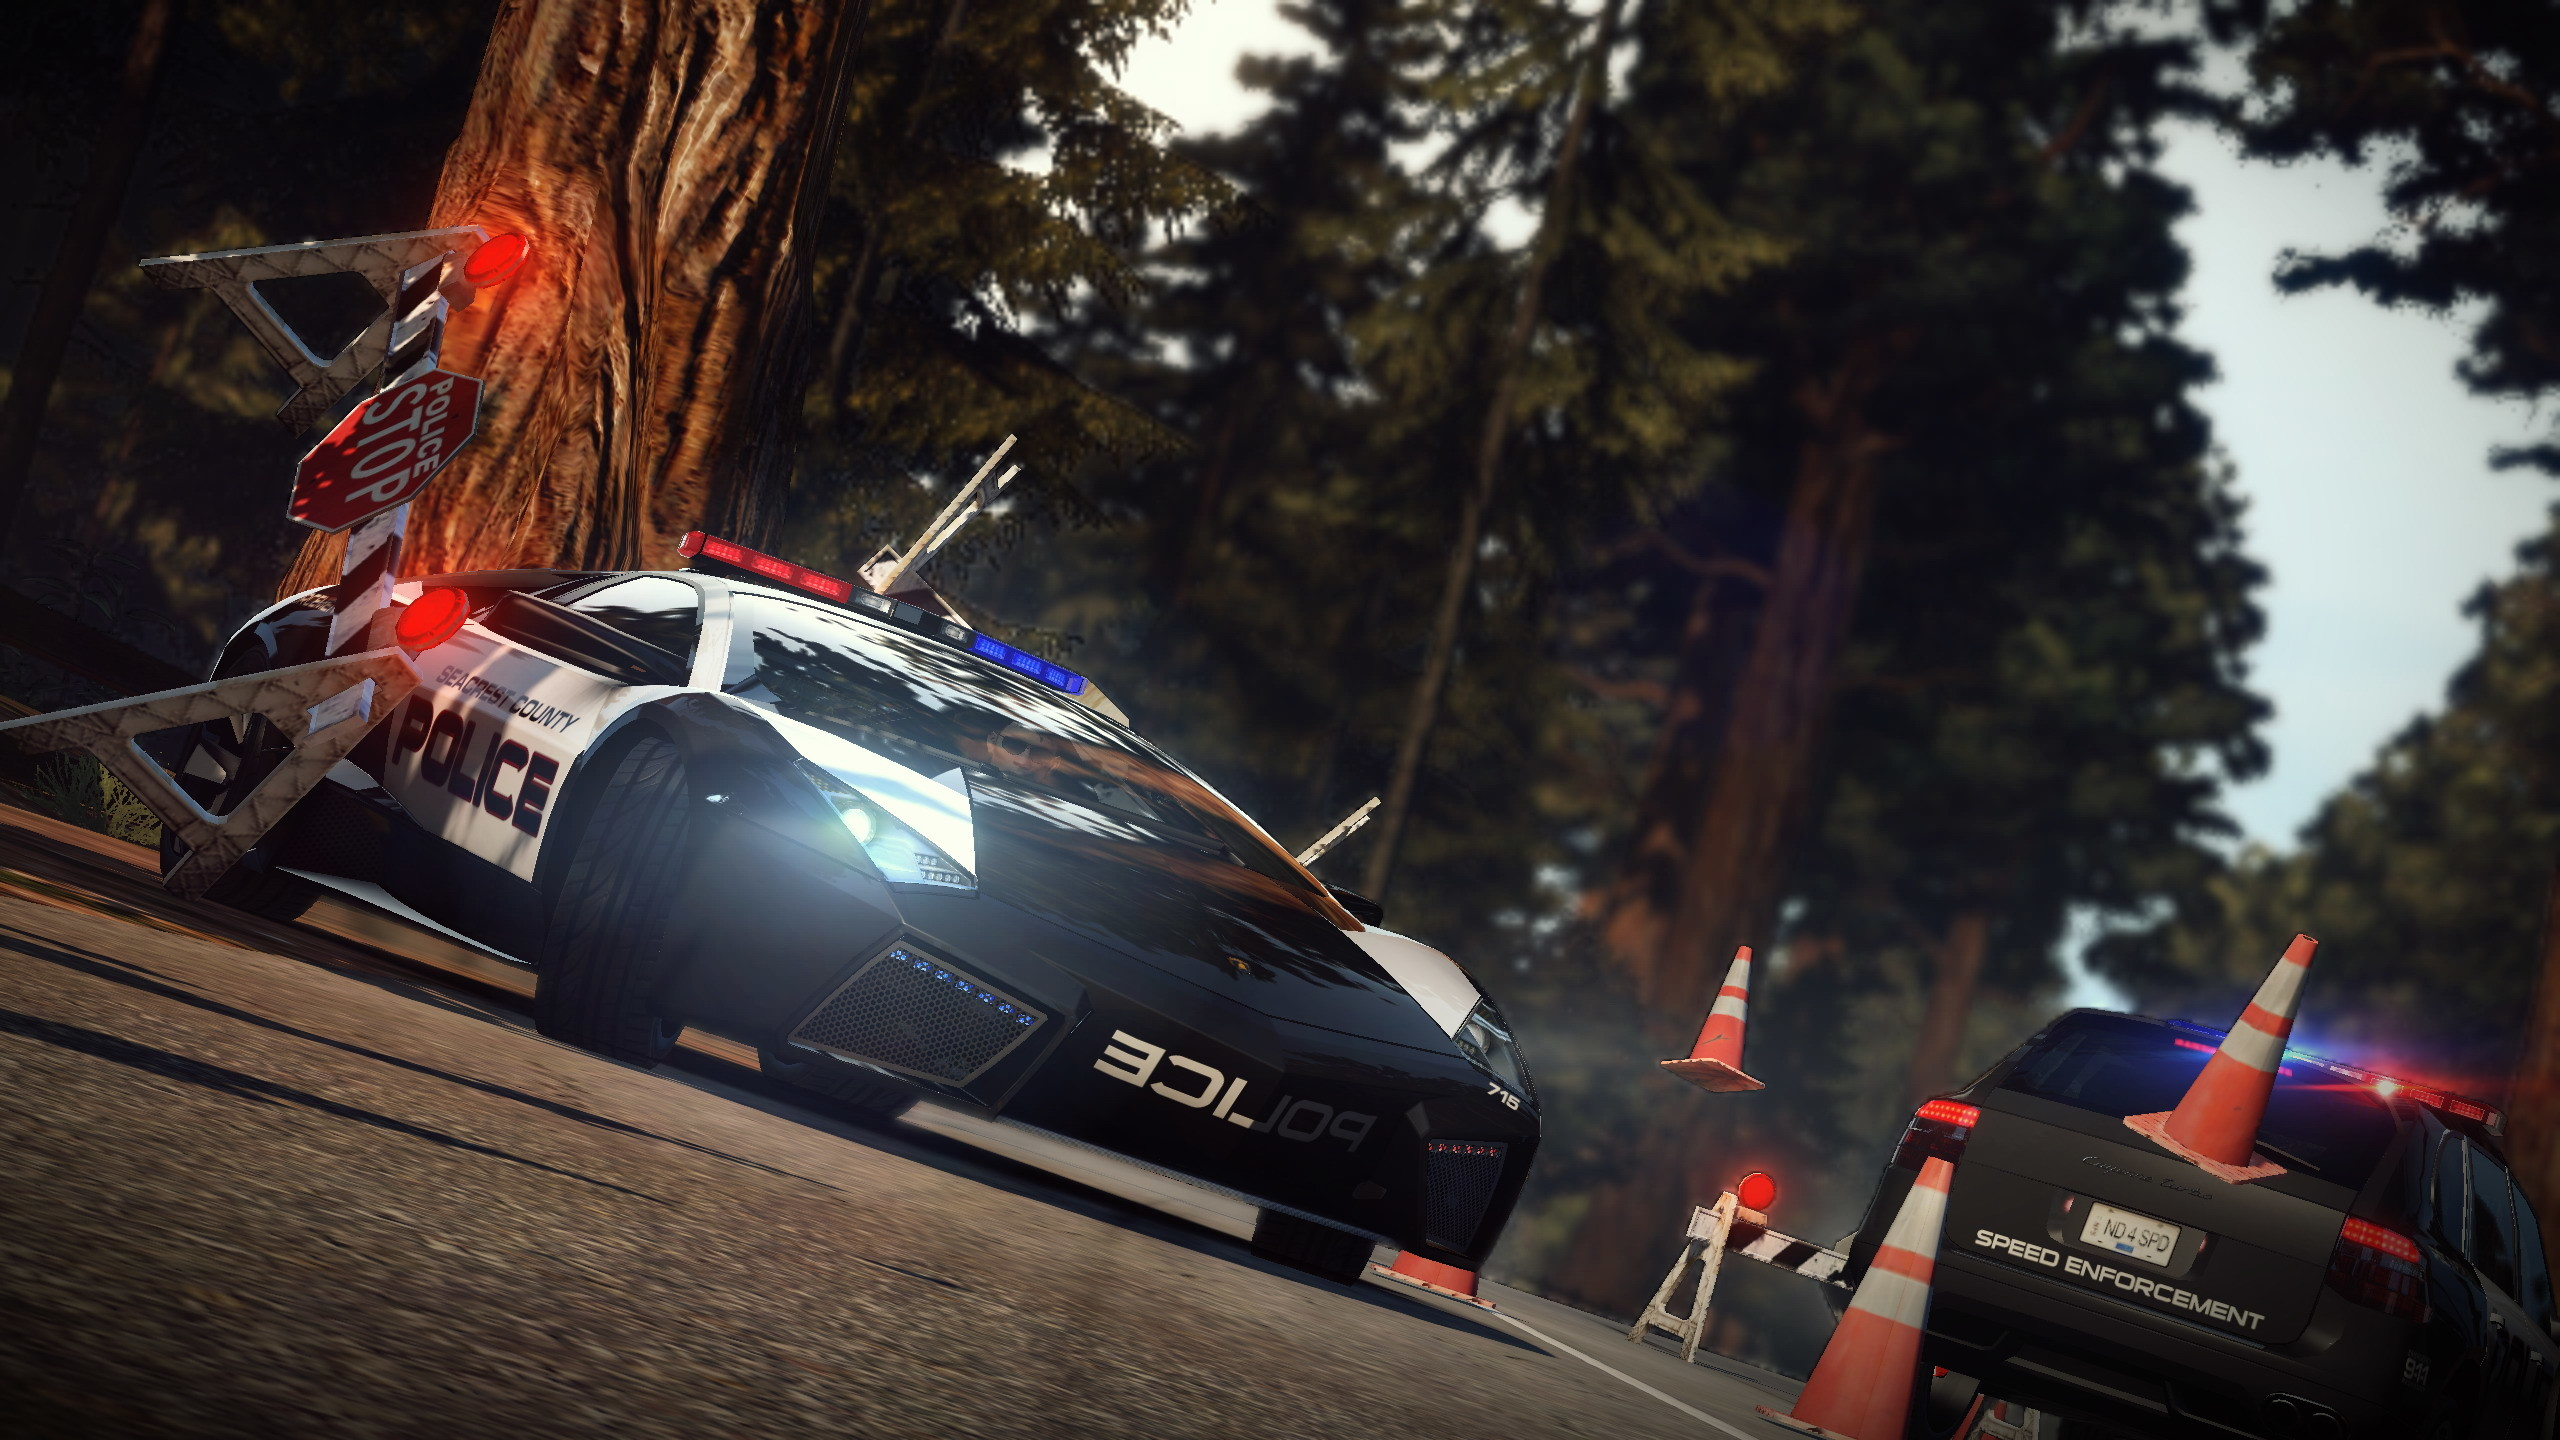 2560x1440 Need For Speed Hot Pursuit Police Car Break The Obstacles   Resolution